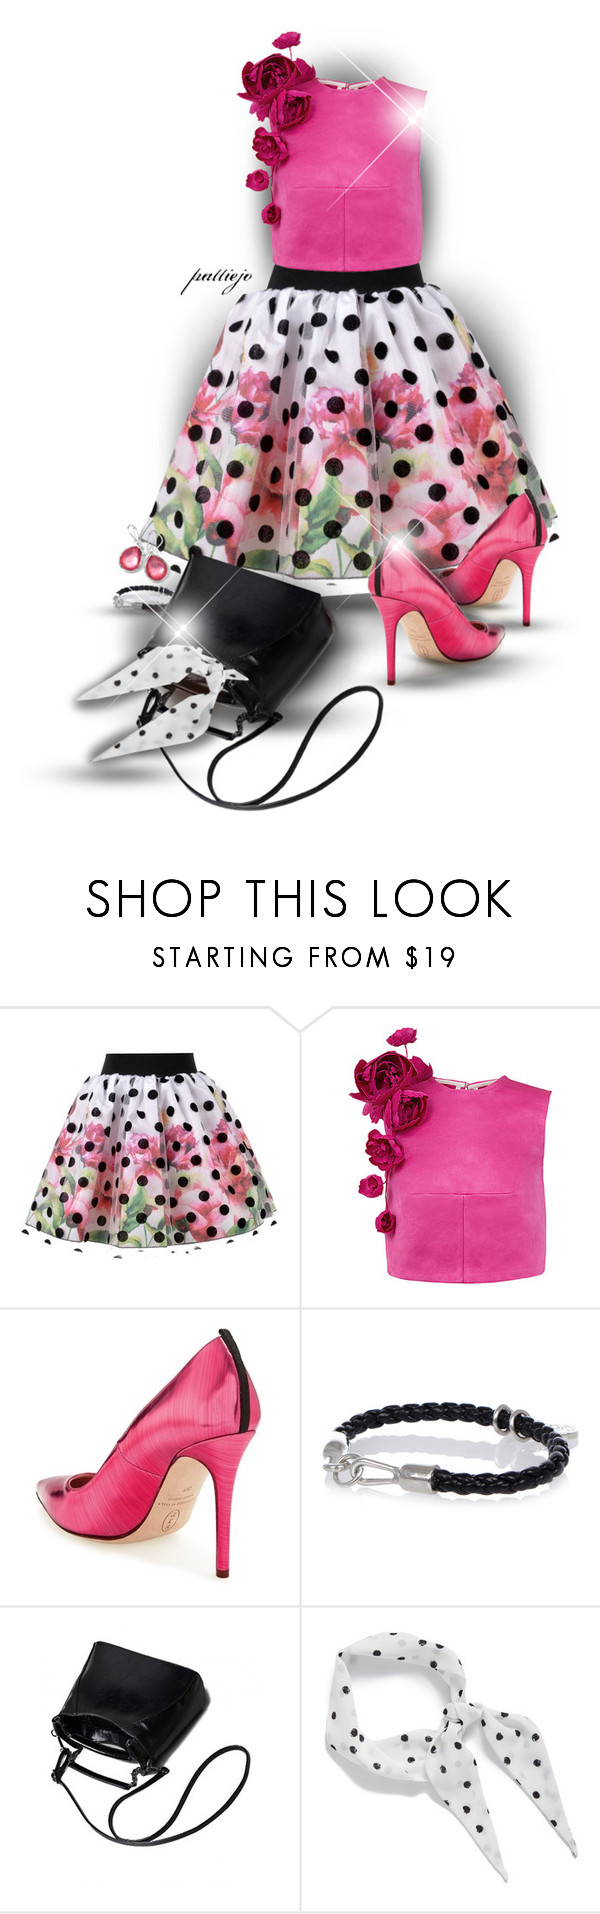 """""""Polkadot Tulle"""" by rockreborn ❤ liked on Polyvore featuring Love Made Love, Esme Vie, SJP, Diesel, Halogen, Ippolita and Trilogy"""